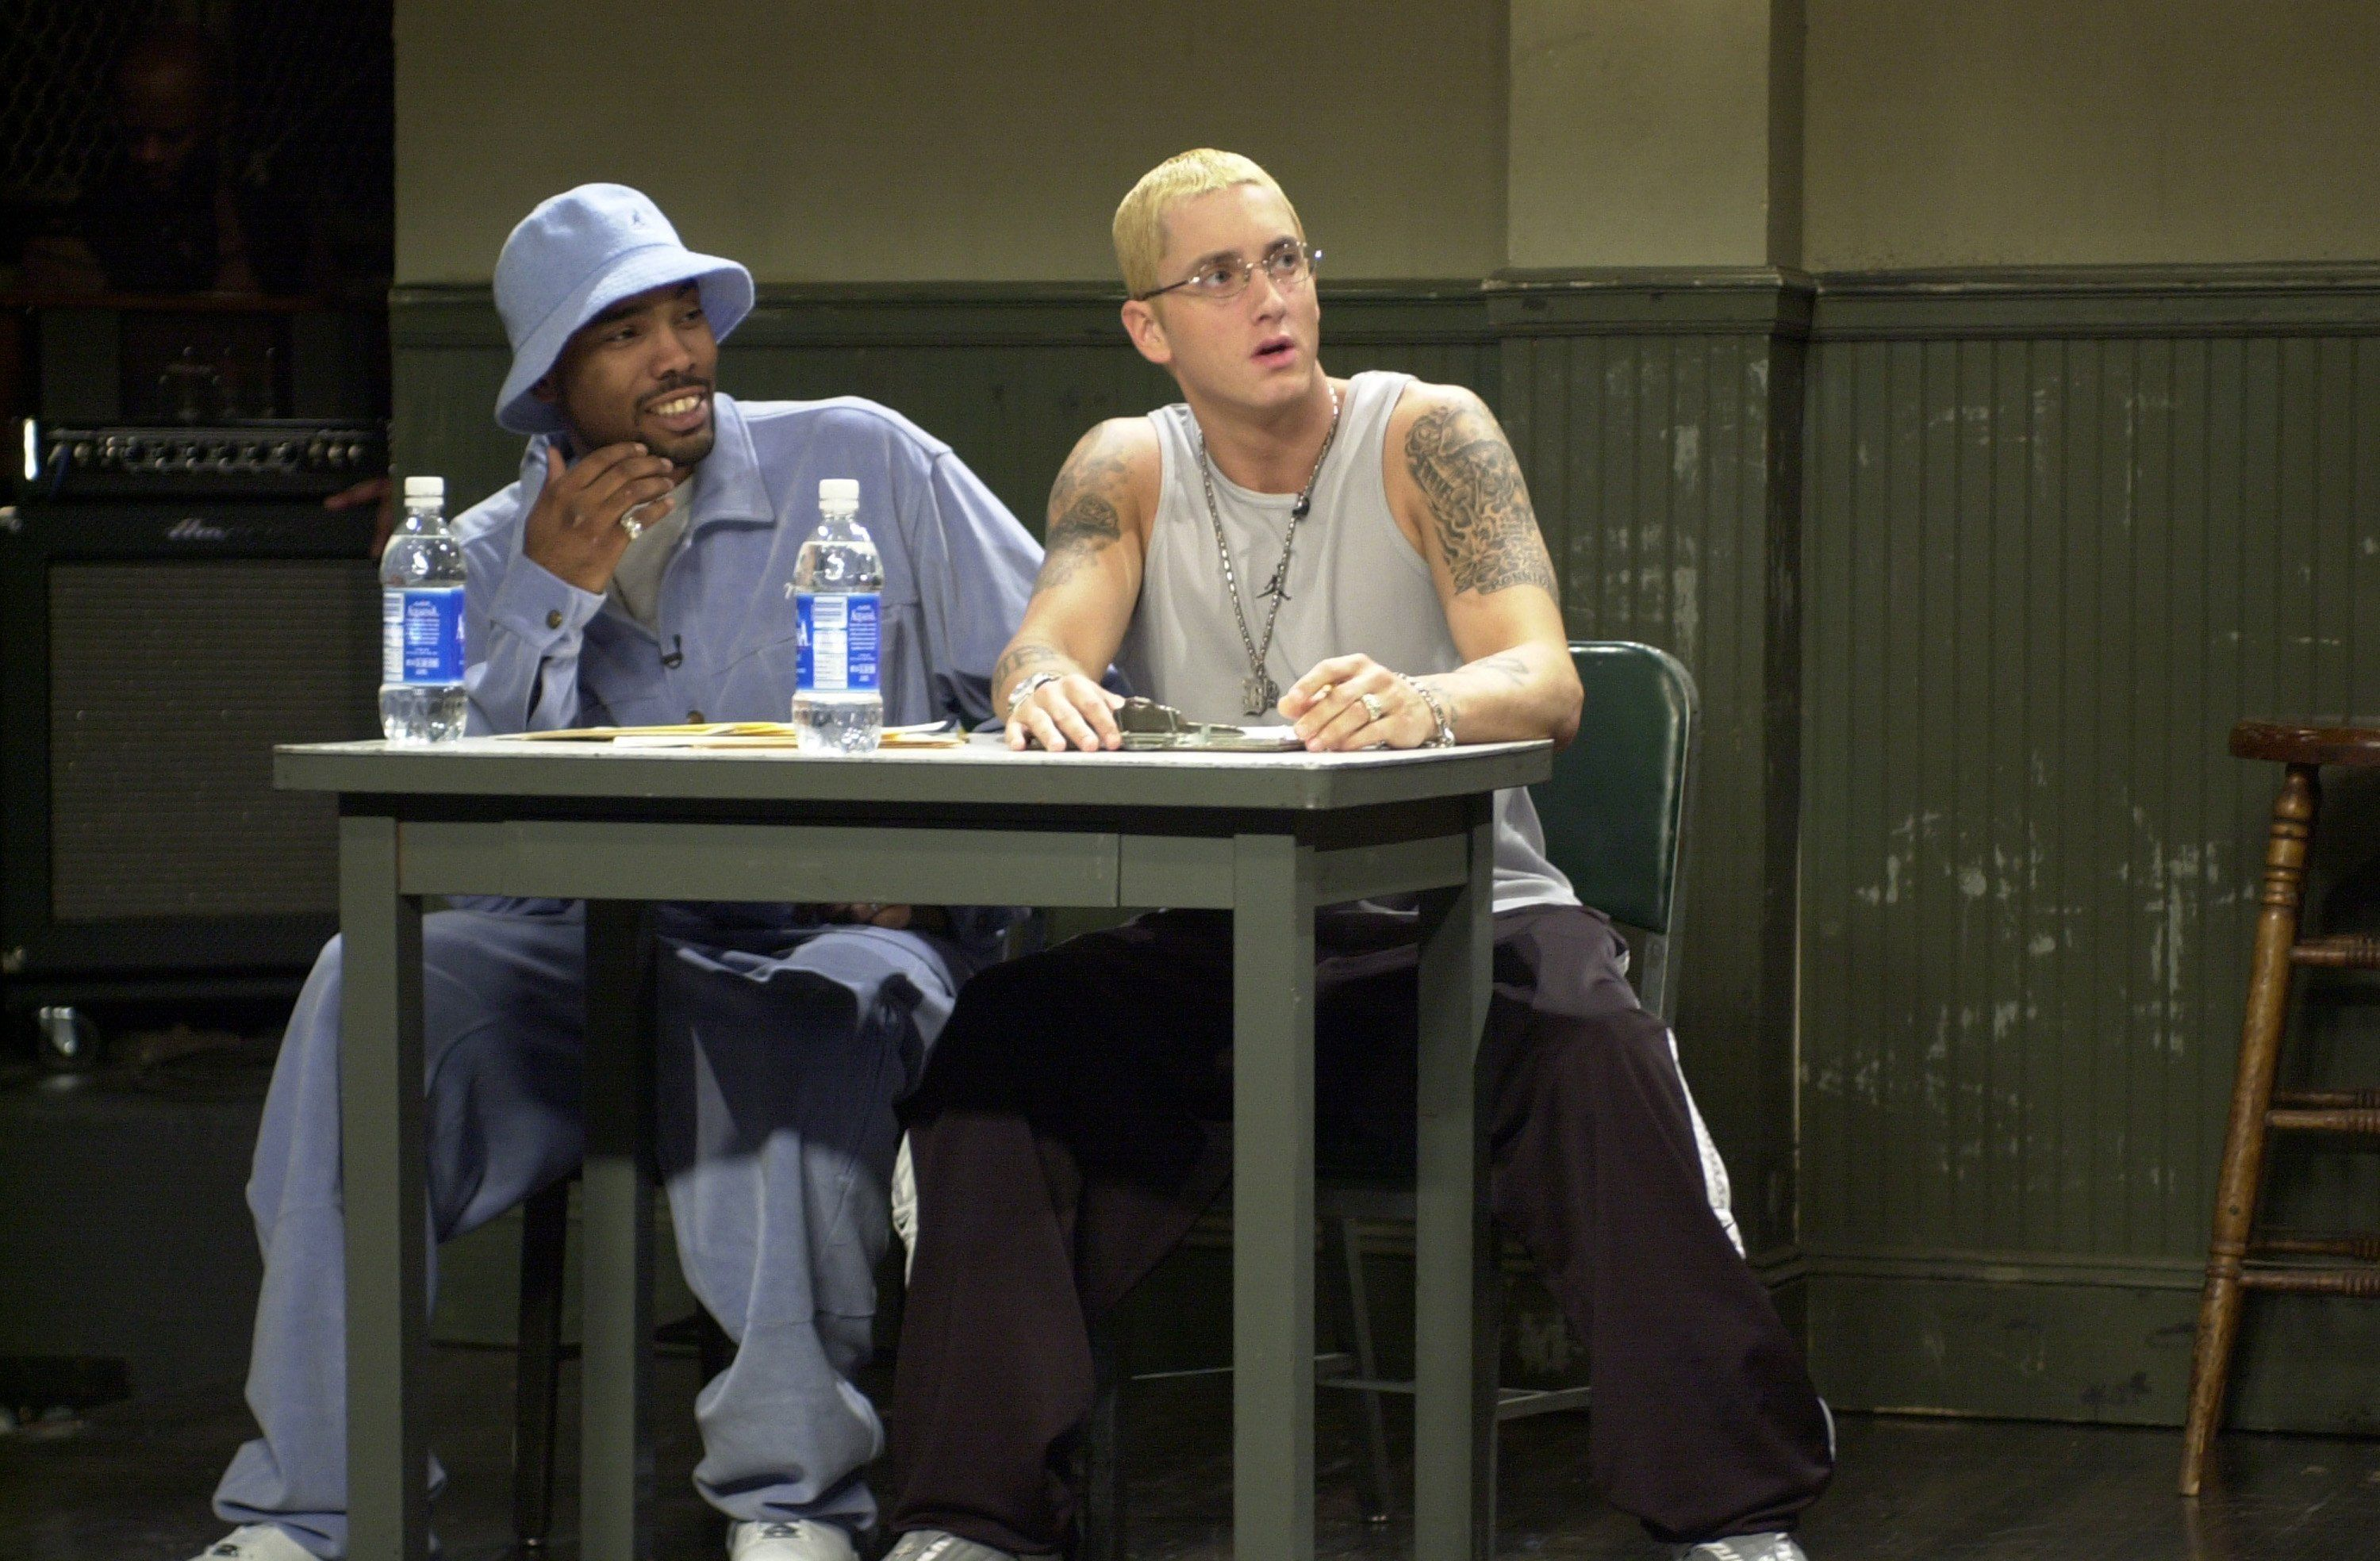 Take 25 Minutes To Appreciate This Unreleased 2004 Eminem And D12 Freestyle